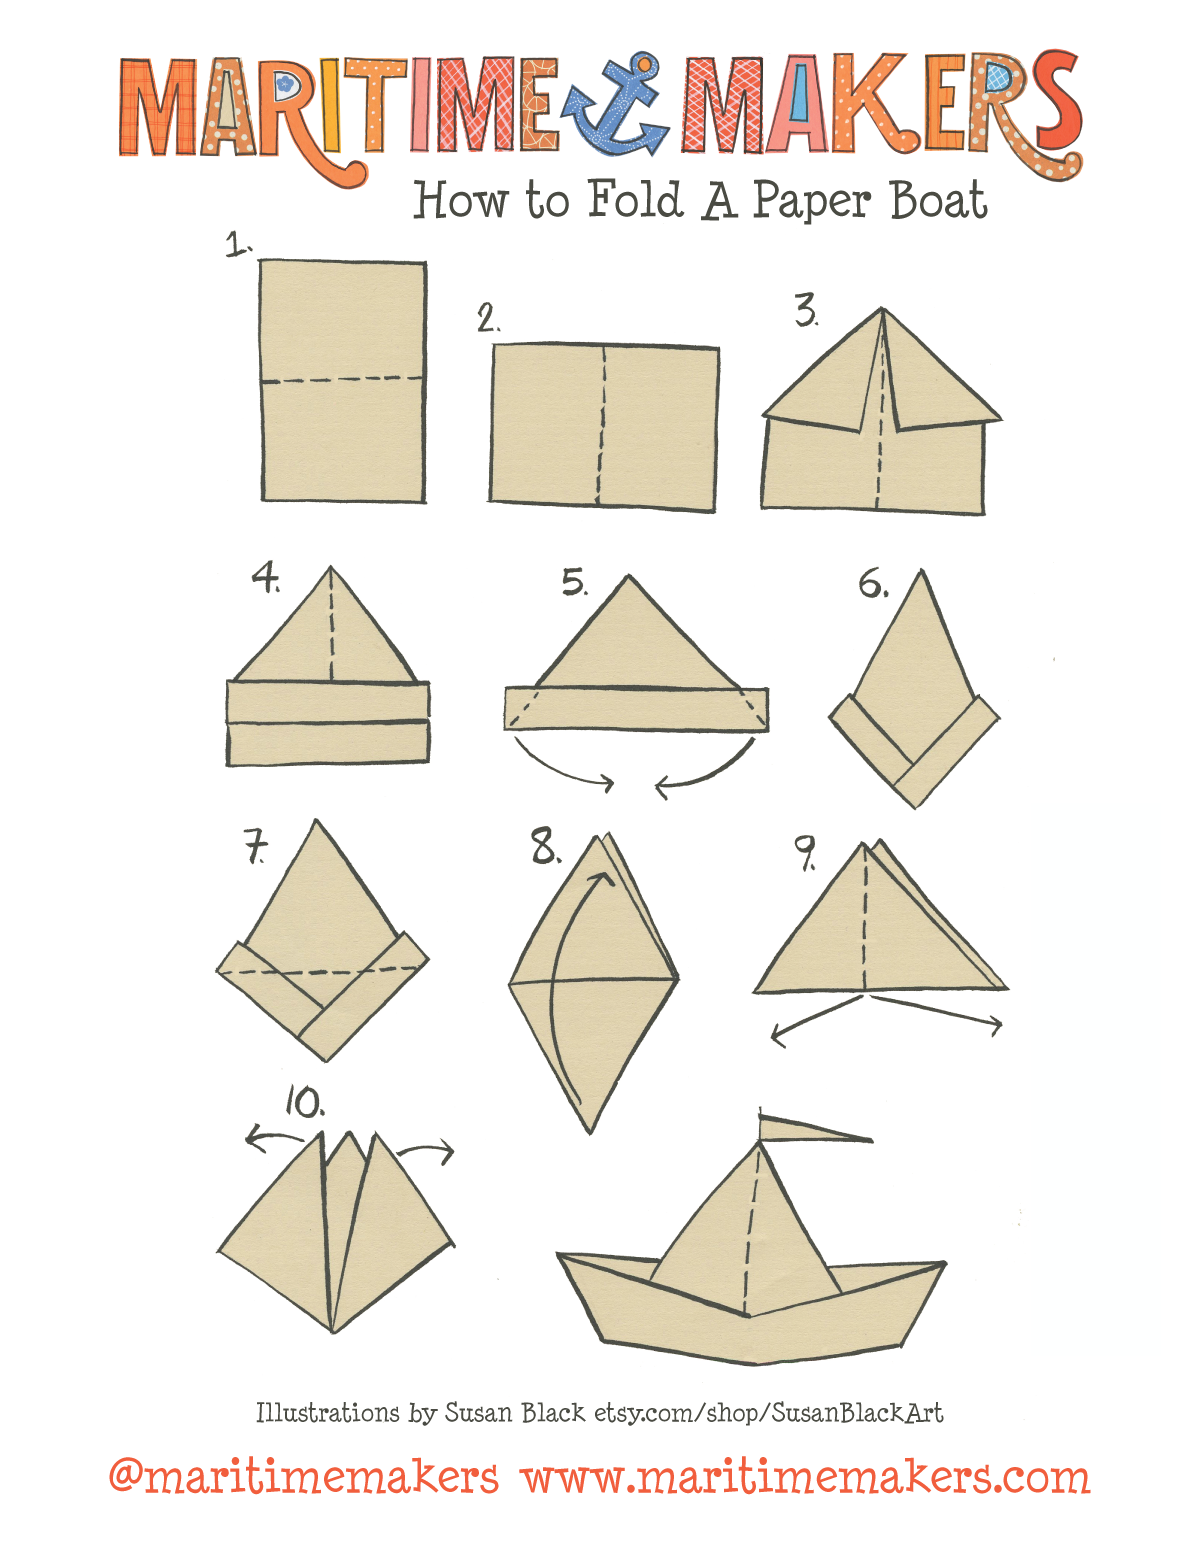 Maritime makers how to fold a paper boat printable for How to build a house step by step instructions